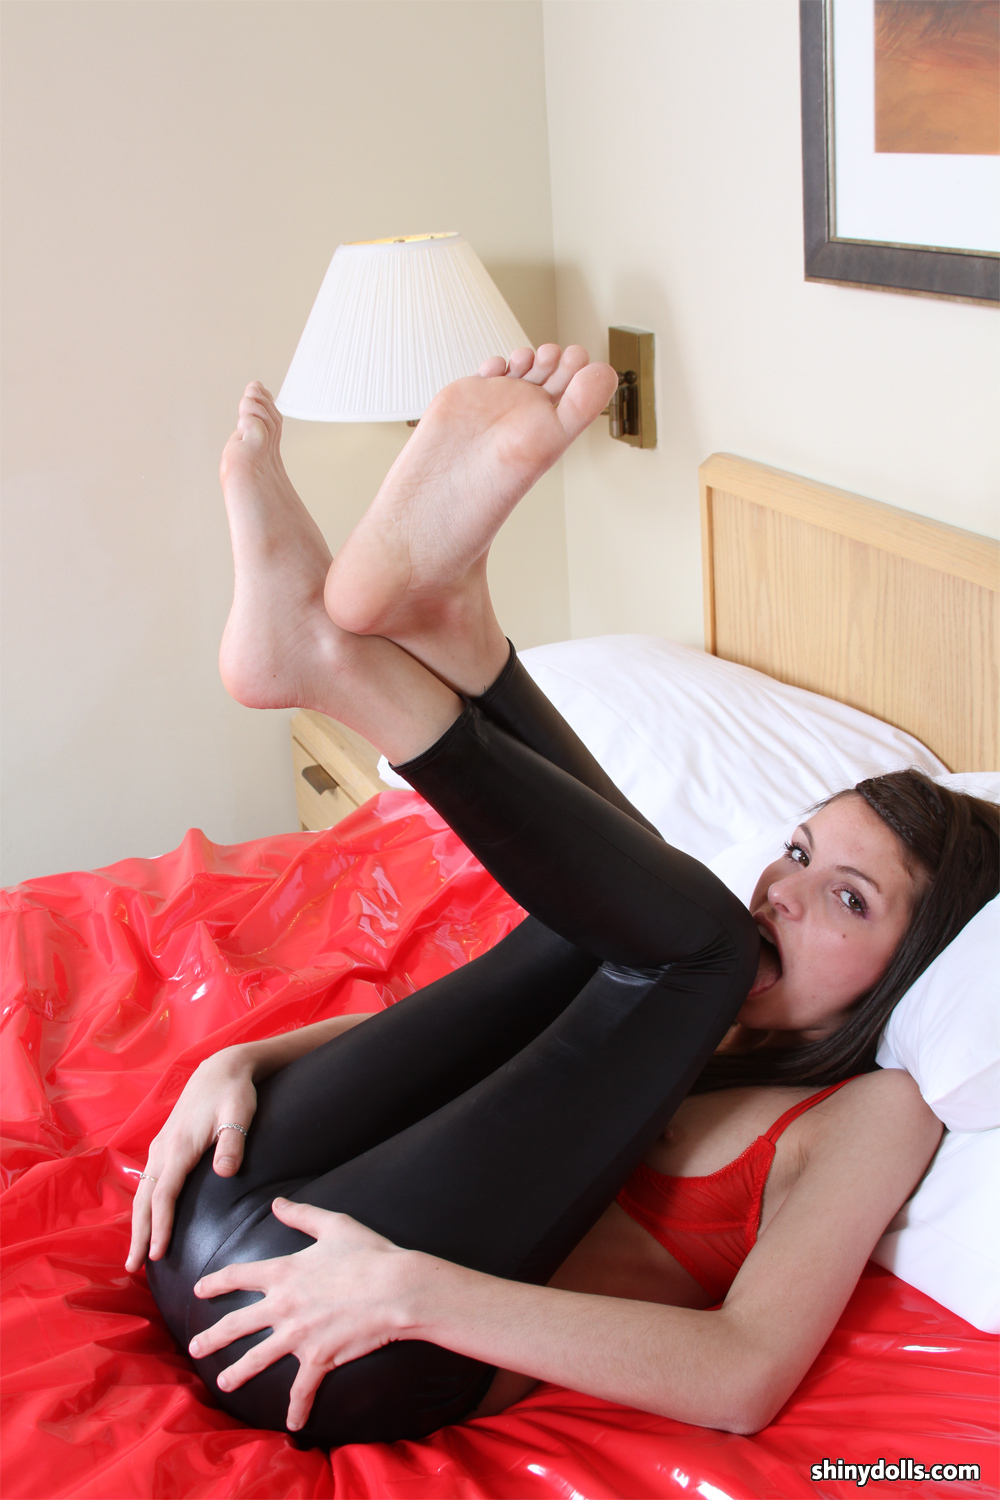 feet-lovers-36